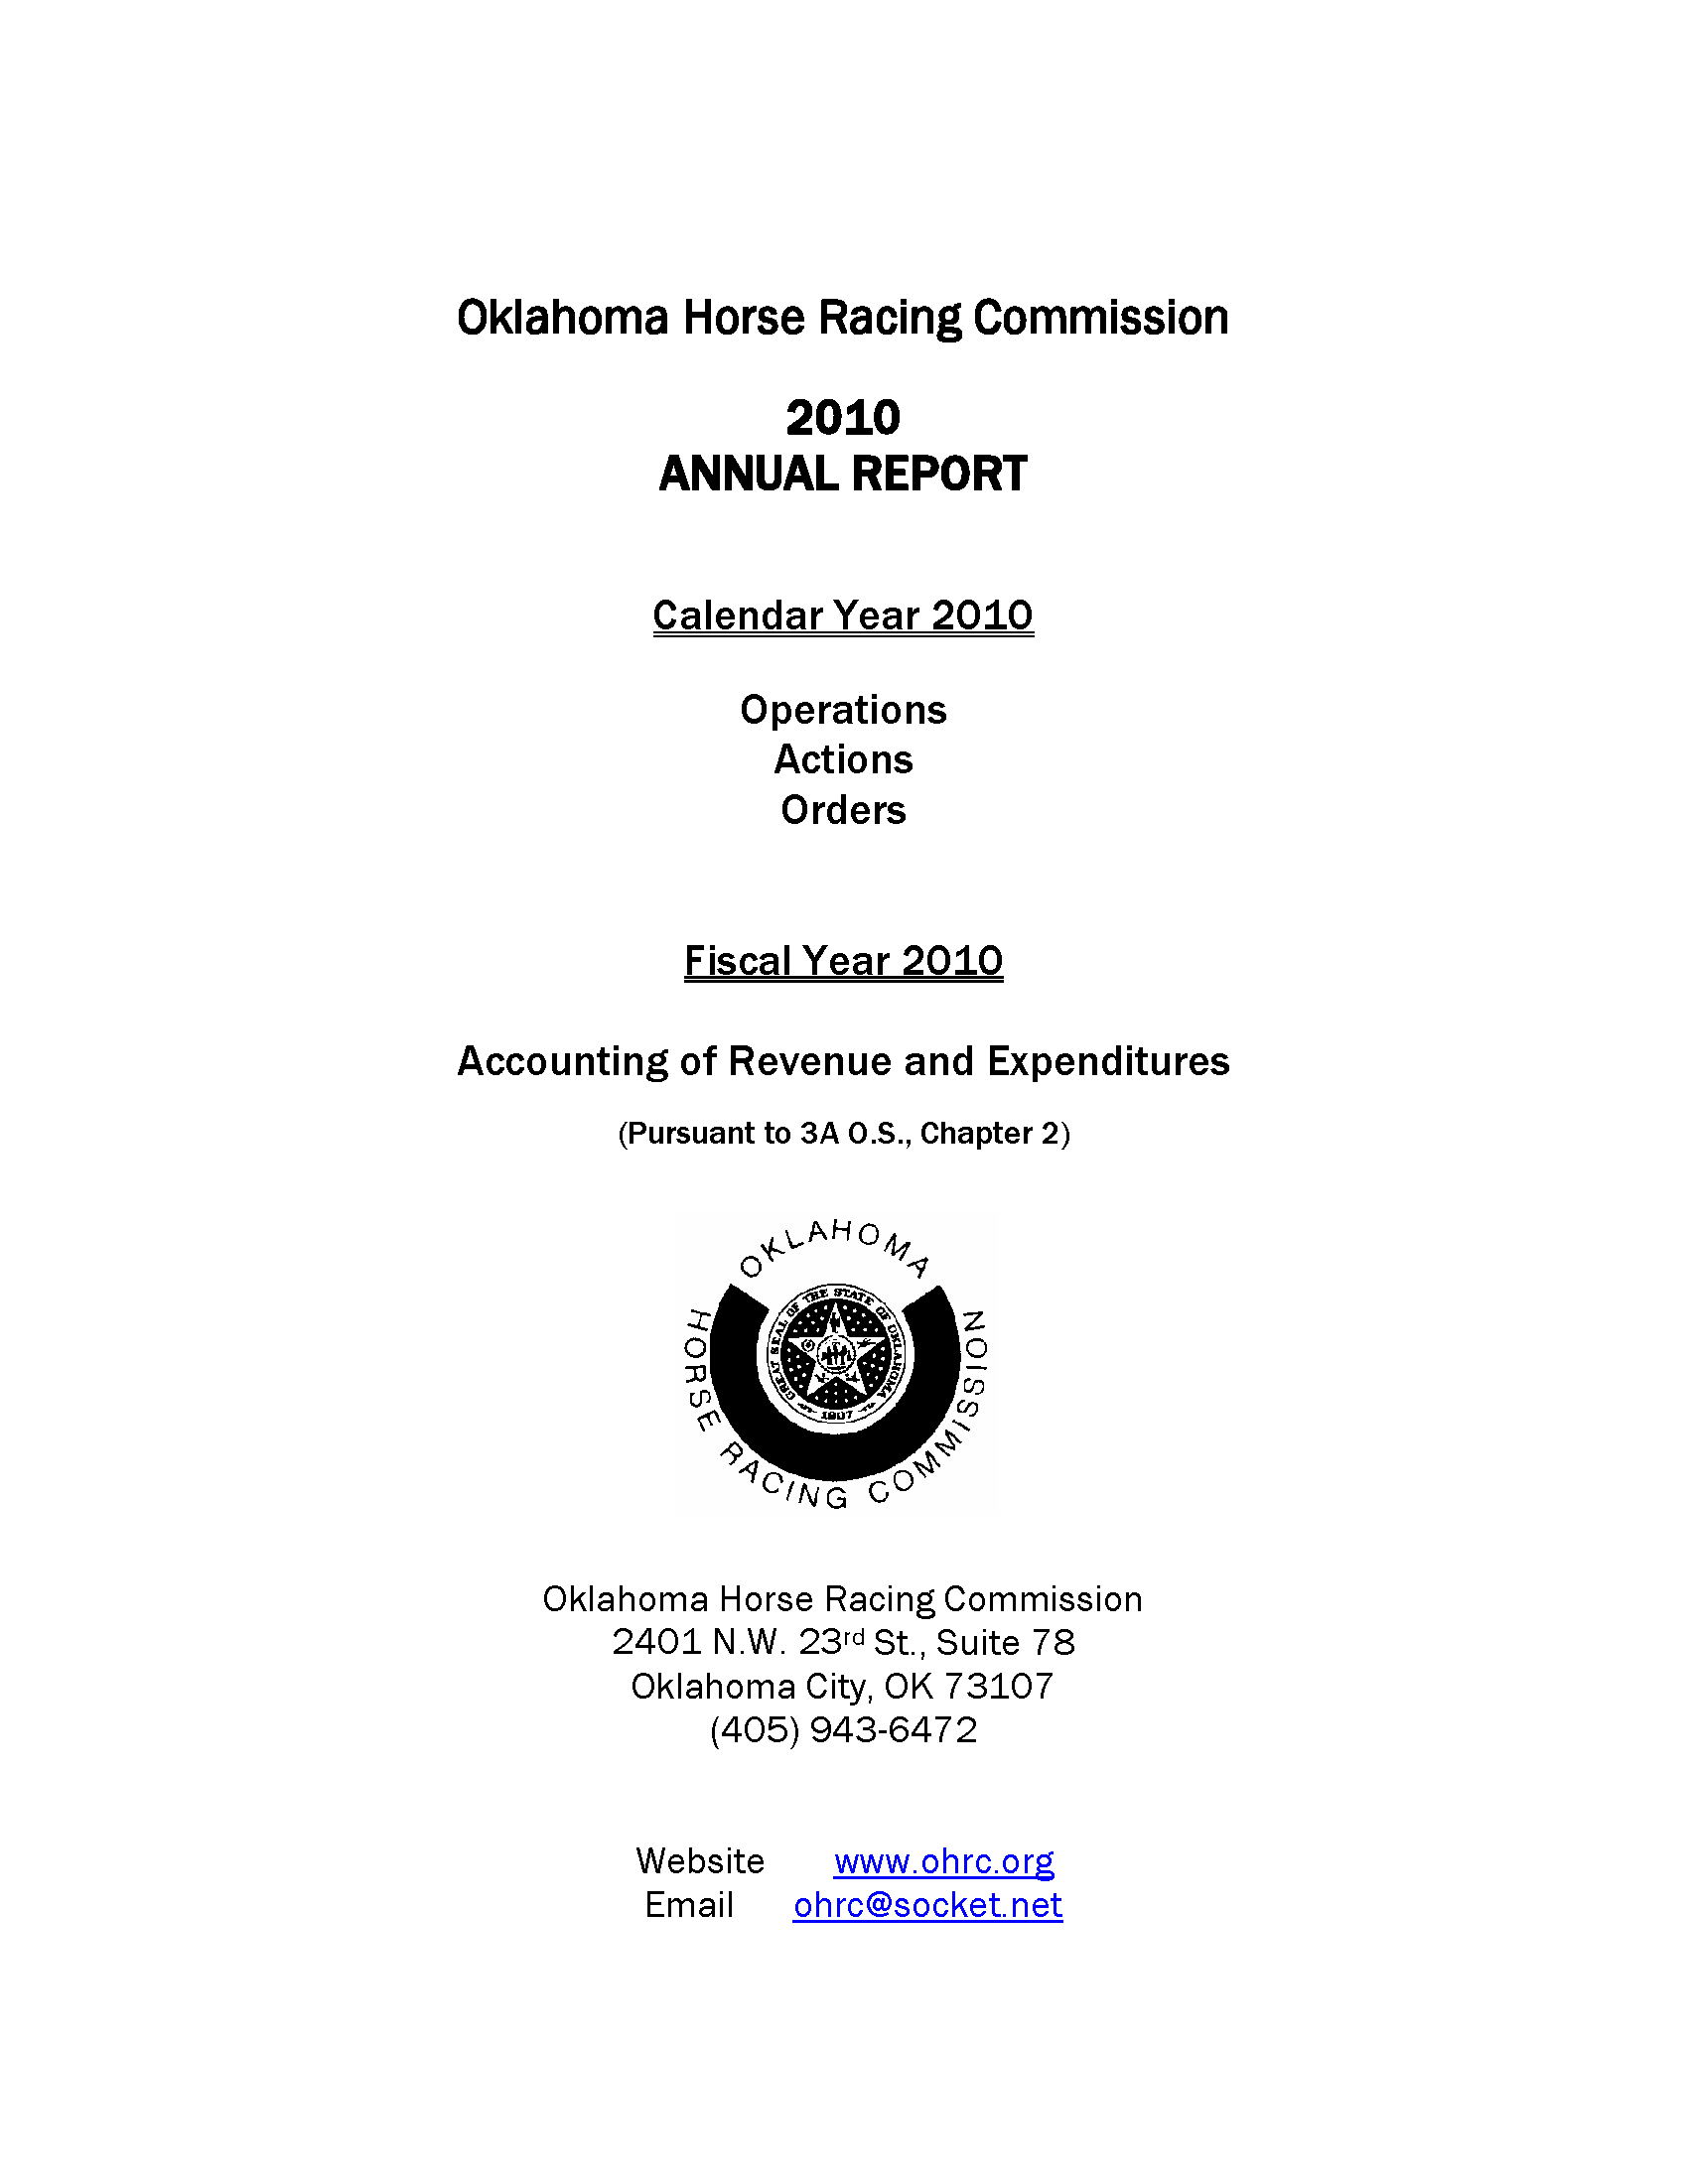 Horse Racing Commission annual report 2010 - Documents OK